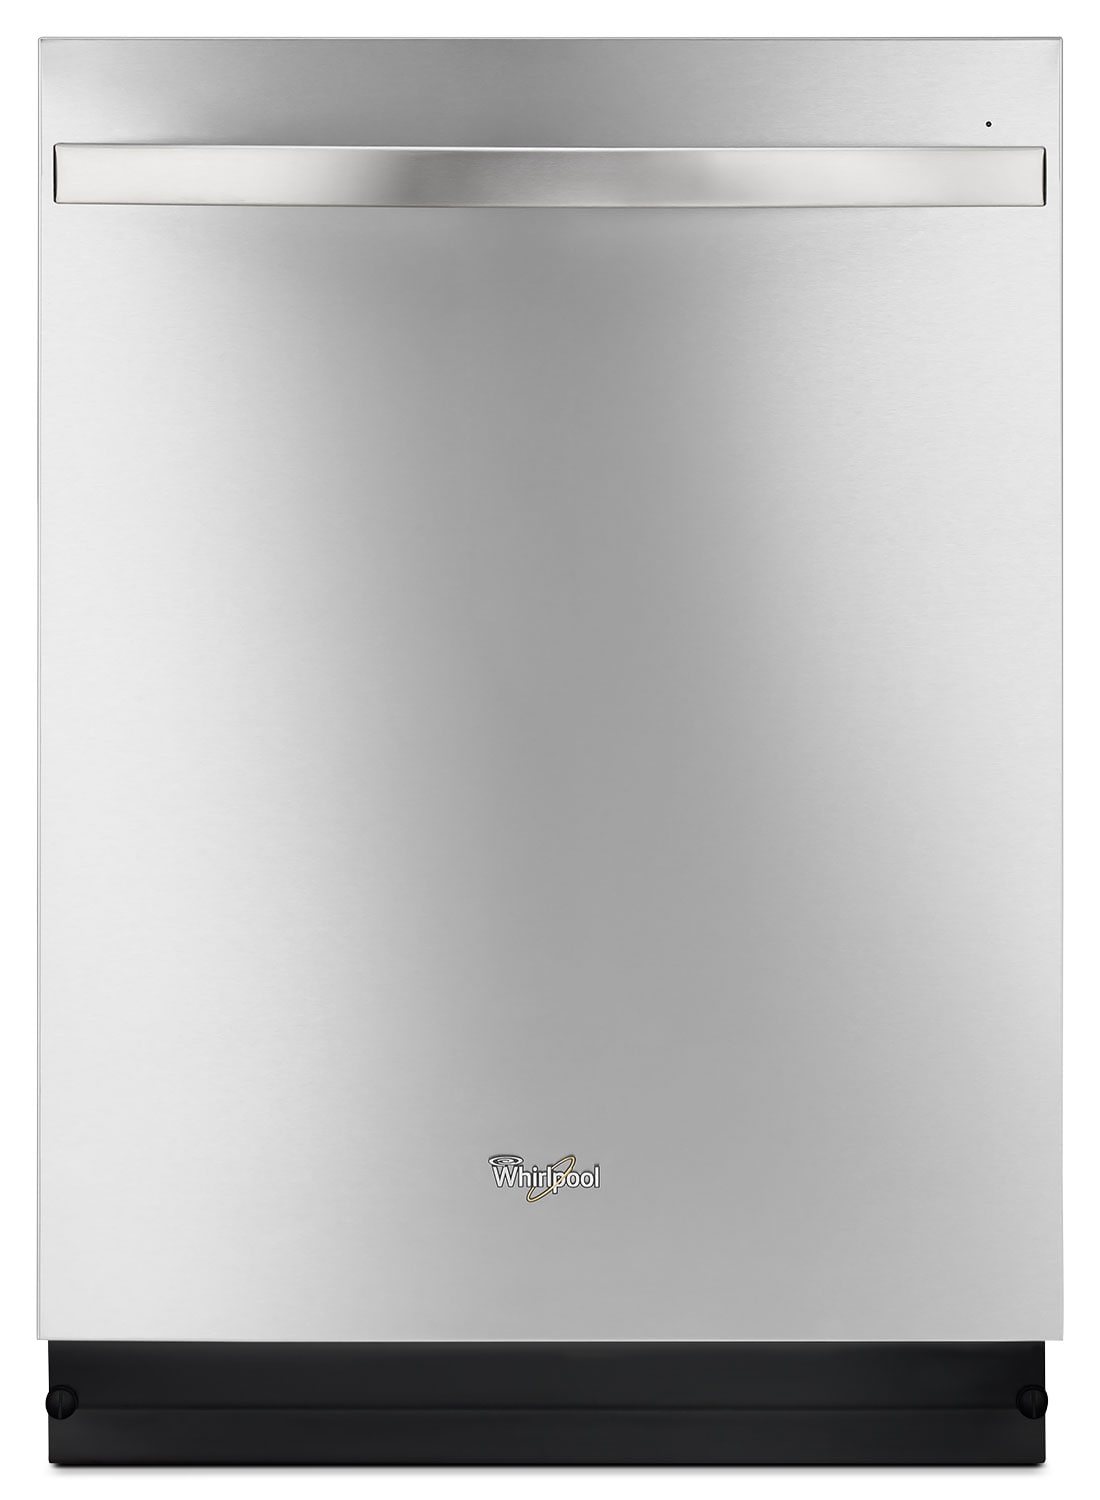 [Whirlpool Stainless Steel Built-In Dishwasher - WDT780SAEM]